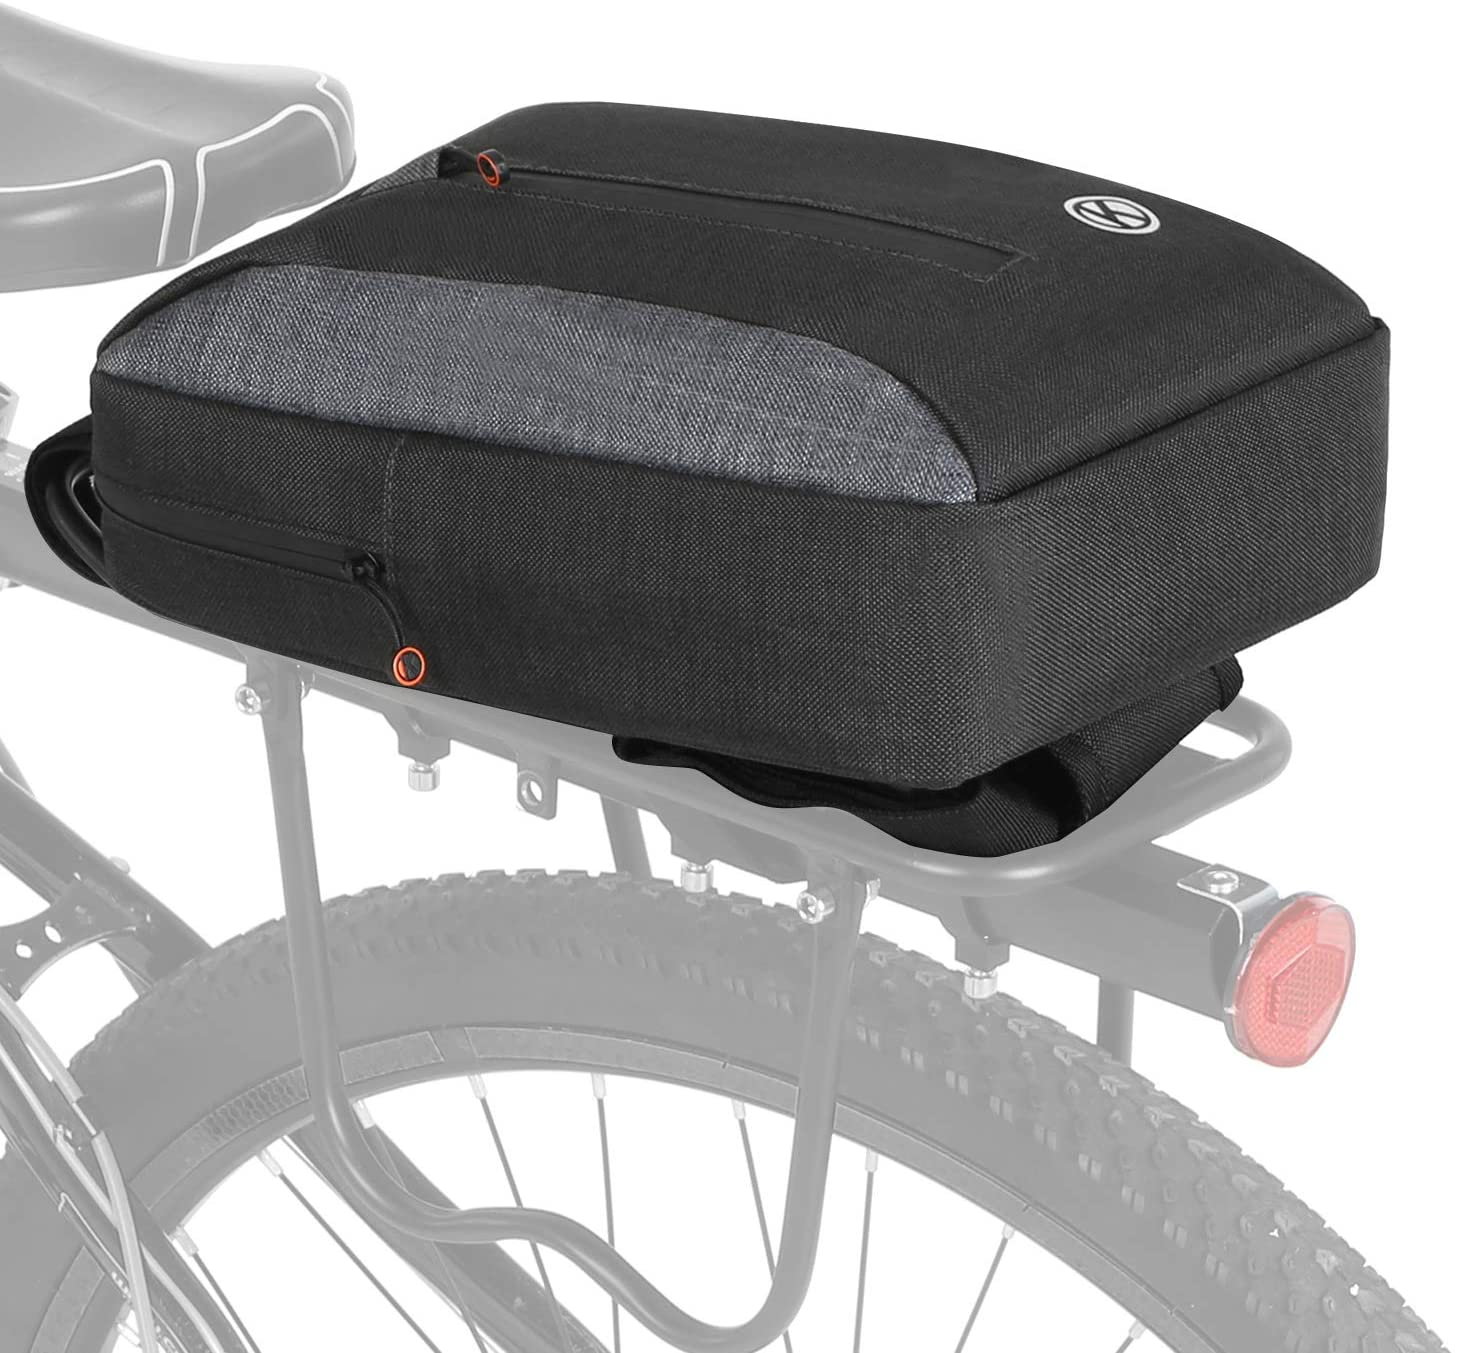 2-in-1 Bicycle Trunk Bag Casual Chest Sling Pack Bag Cycling Bike Rear Rack Carrier Bag Pannier Walmeck